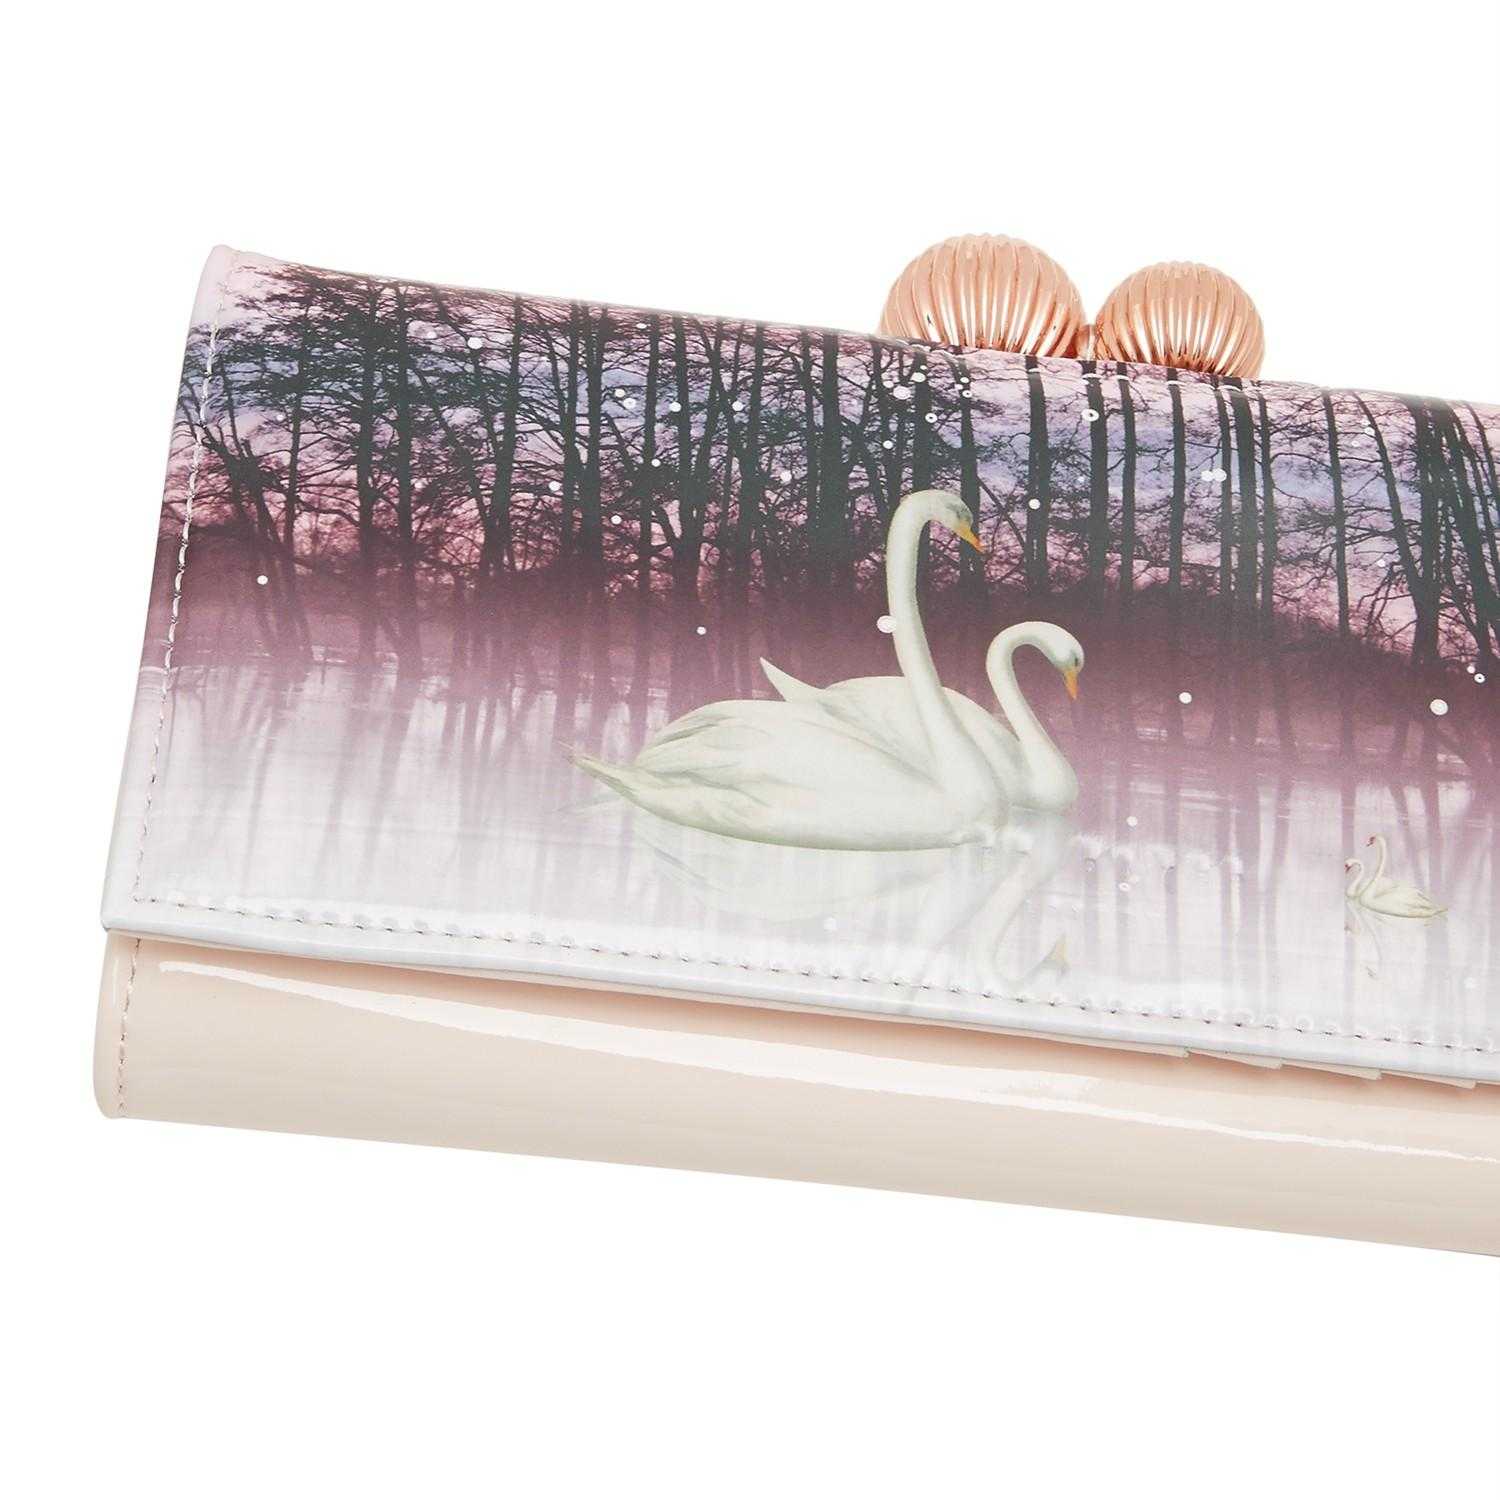 e85102fad Ted Baker Swanee Leather Sparkling Swan Print Matinee Purse - Lyst